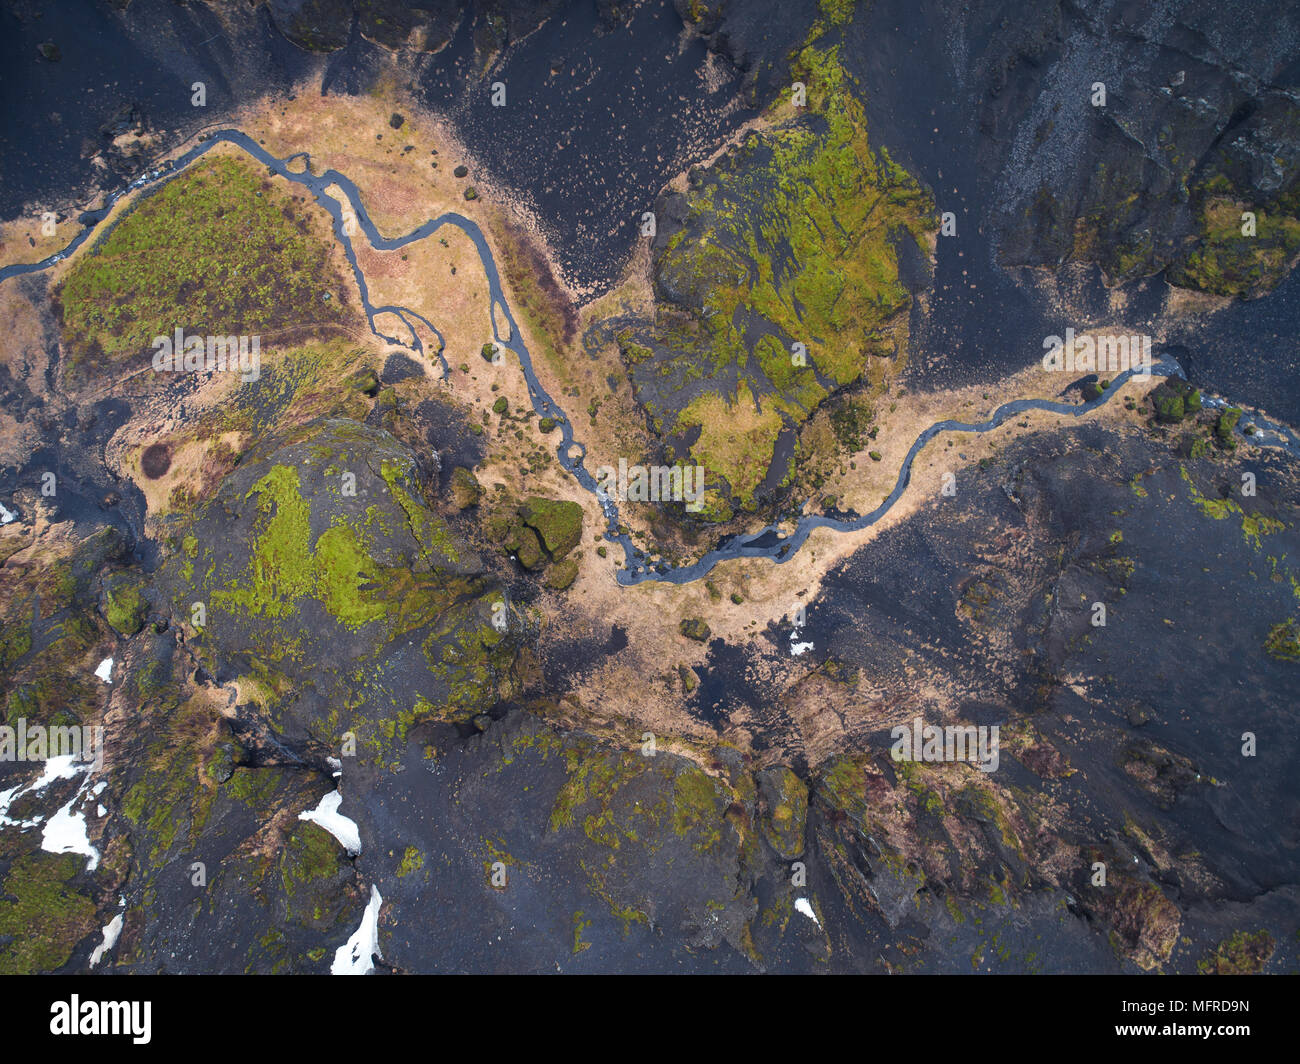 Aerial view of rugged icelandic terrain with little stream in between black rock formations in Iceland - Stock Image